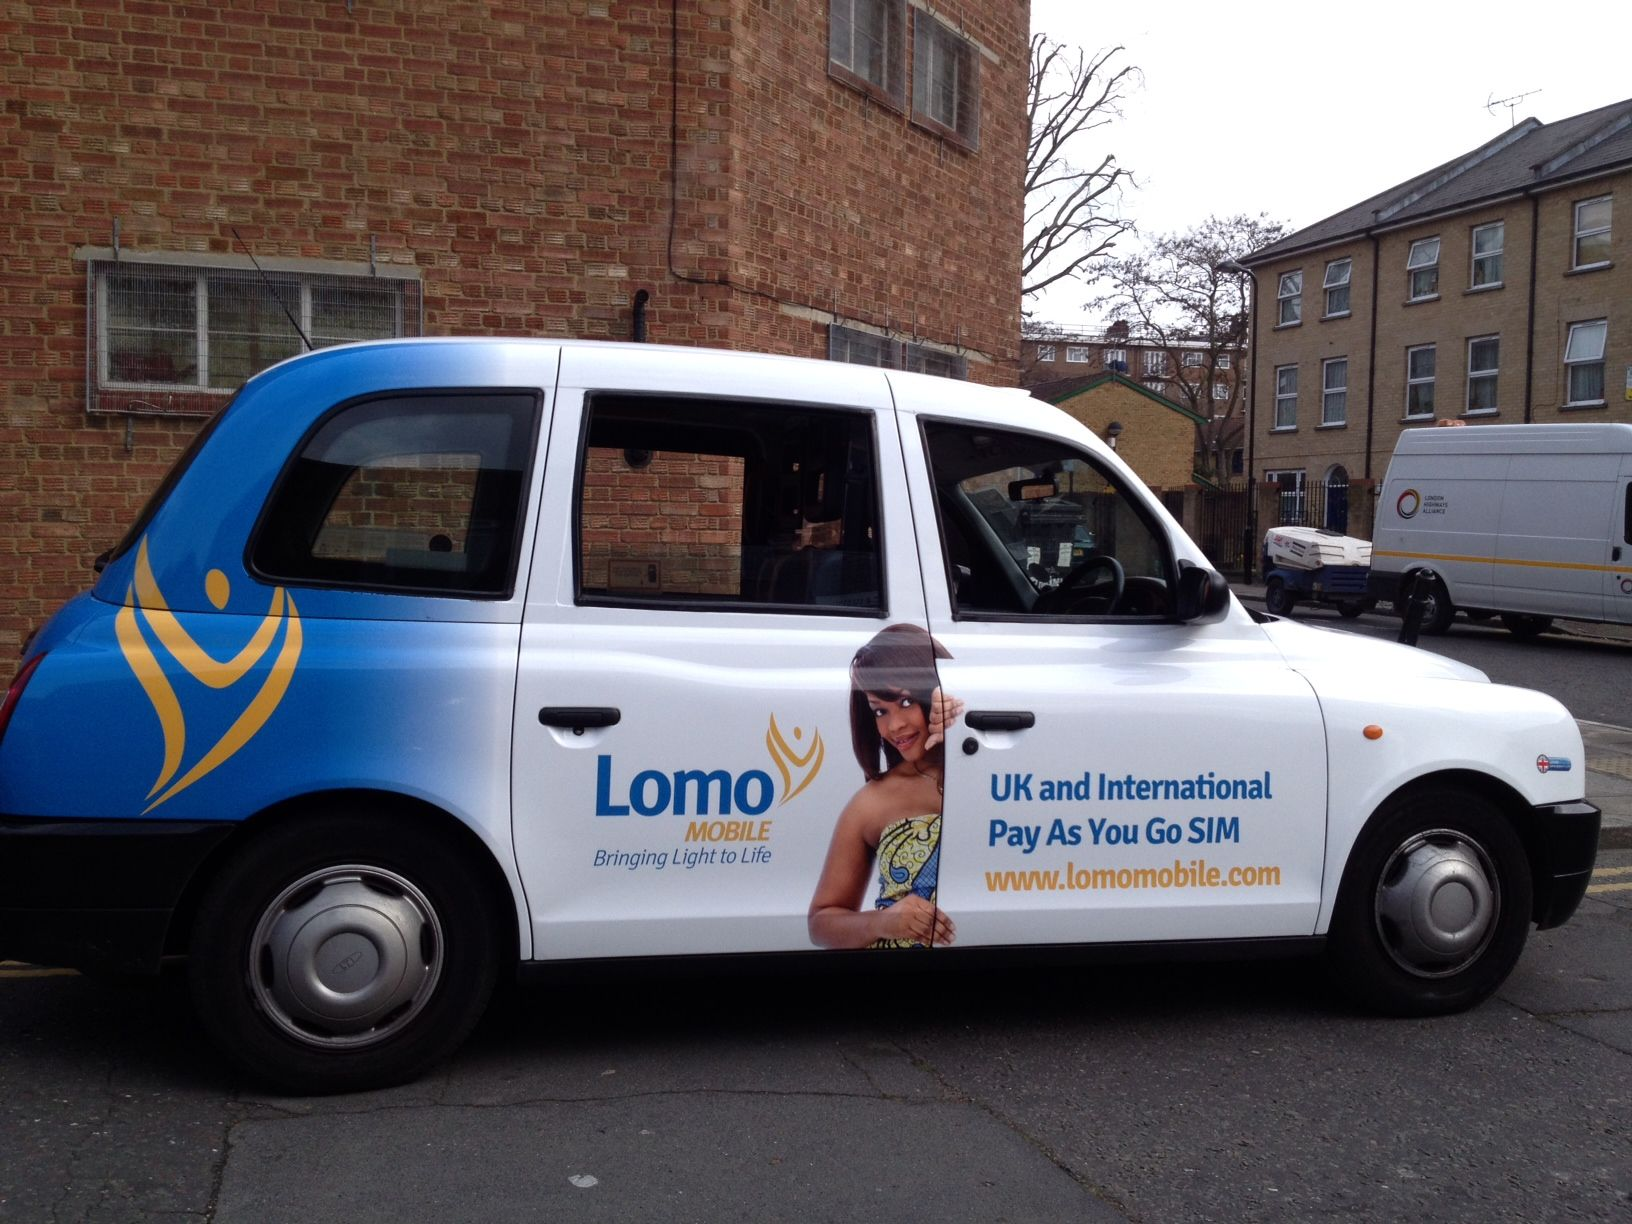 Lomo Mobile call on #London Taxi Advertising as part of their #UK launch http://www.londontaxiadvertising.com/news/lomo-mobile-call-london-taxi-advertising-part-uk-launch/3911/ #advertisingcampaign